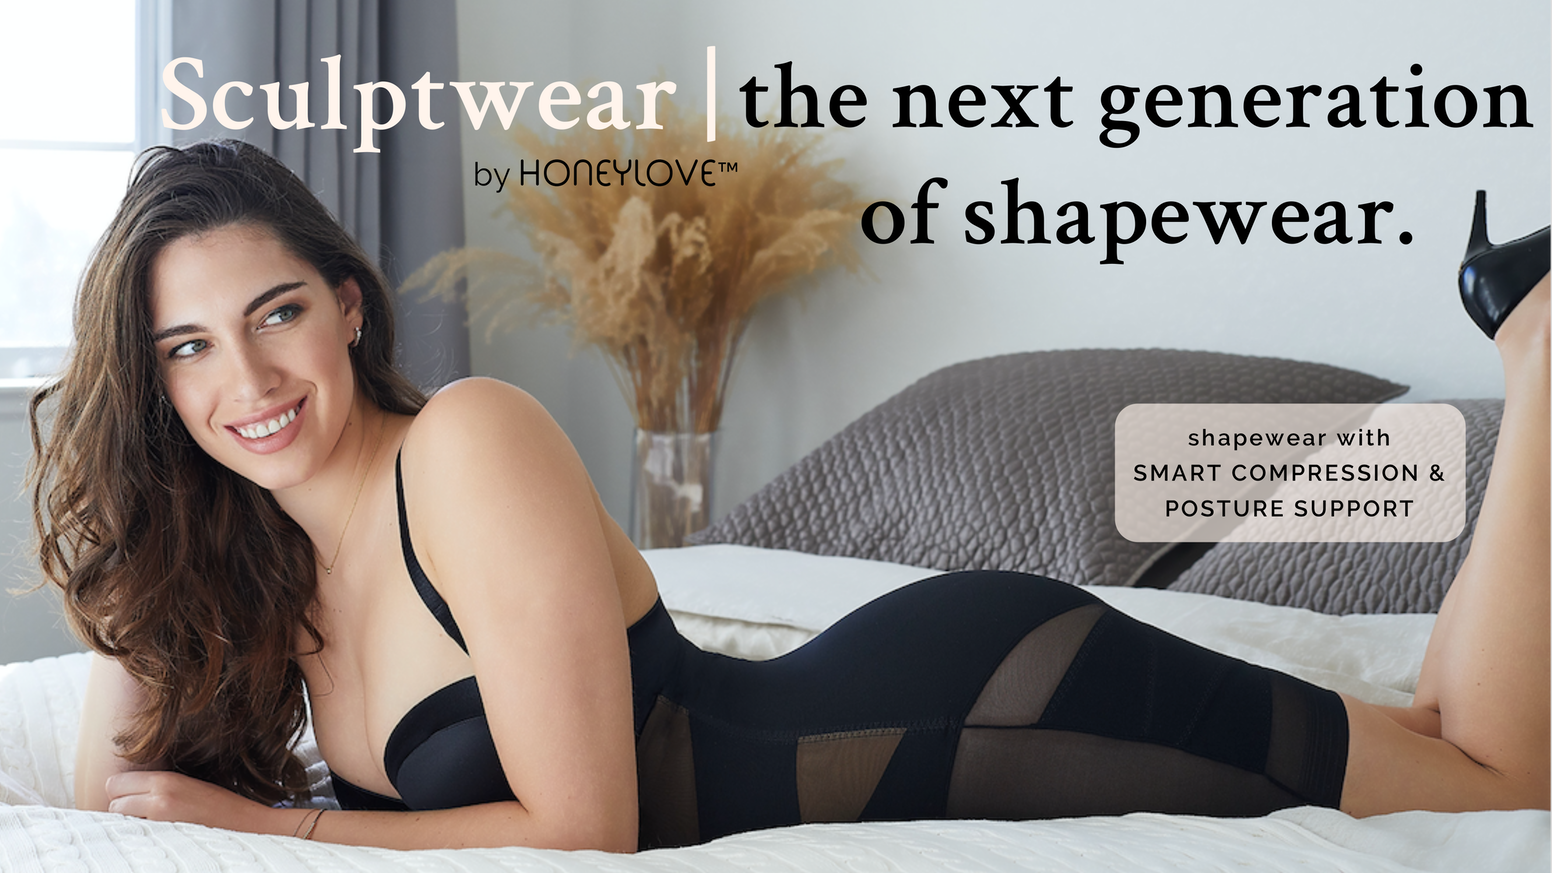 An innovative shapewear that delivers superior shaping, posture support, and all-day comfort in a powerful design you can show off.